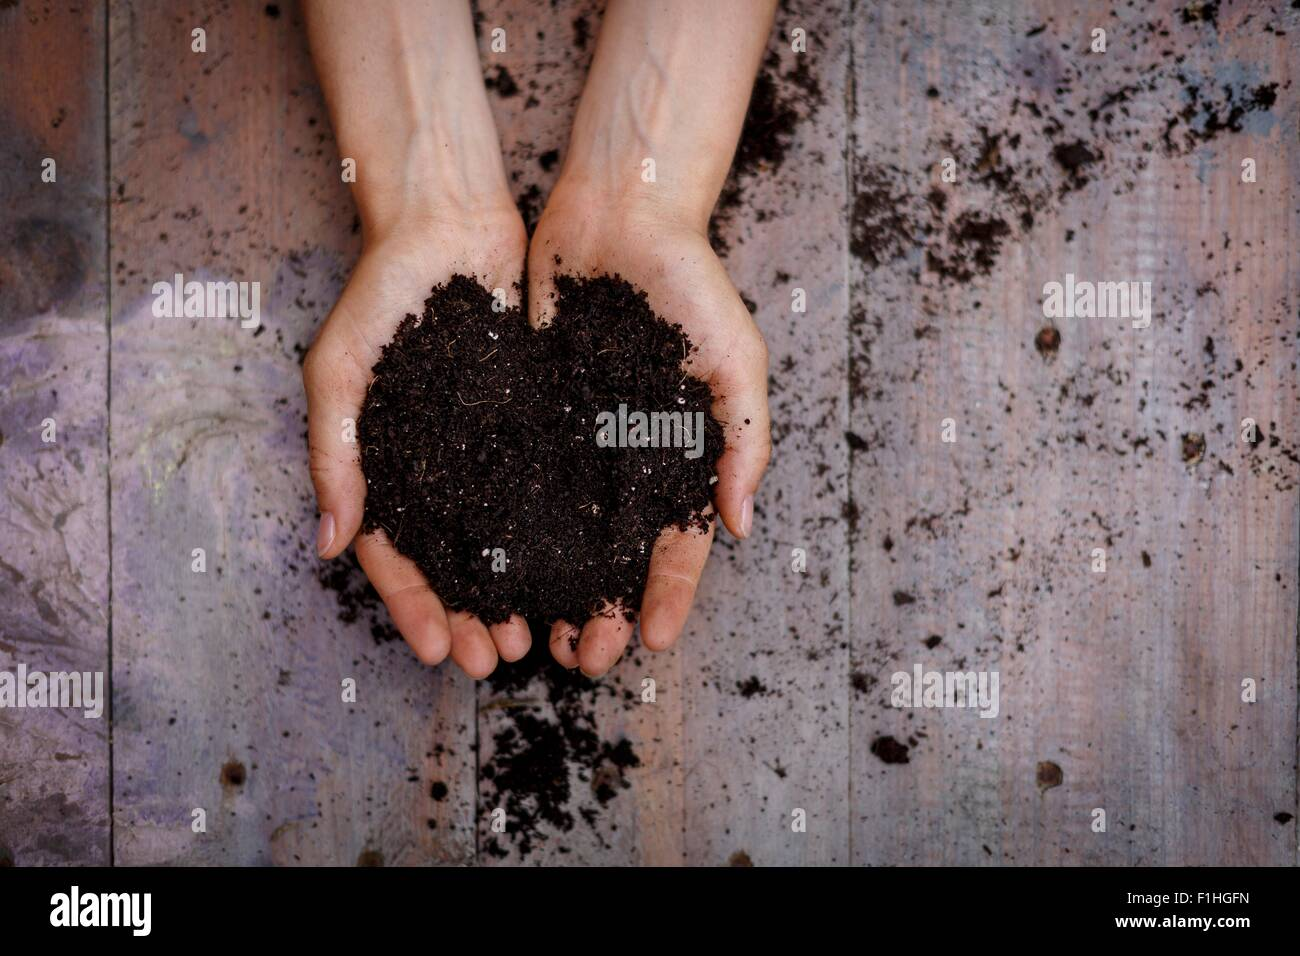 High angle view of cupped hands holding soil - Stock Image